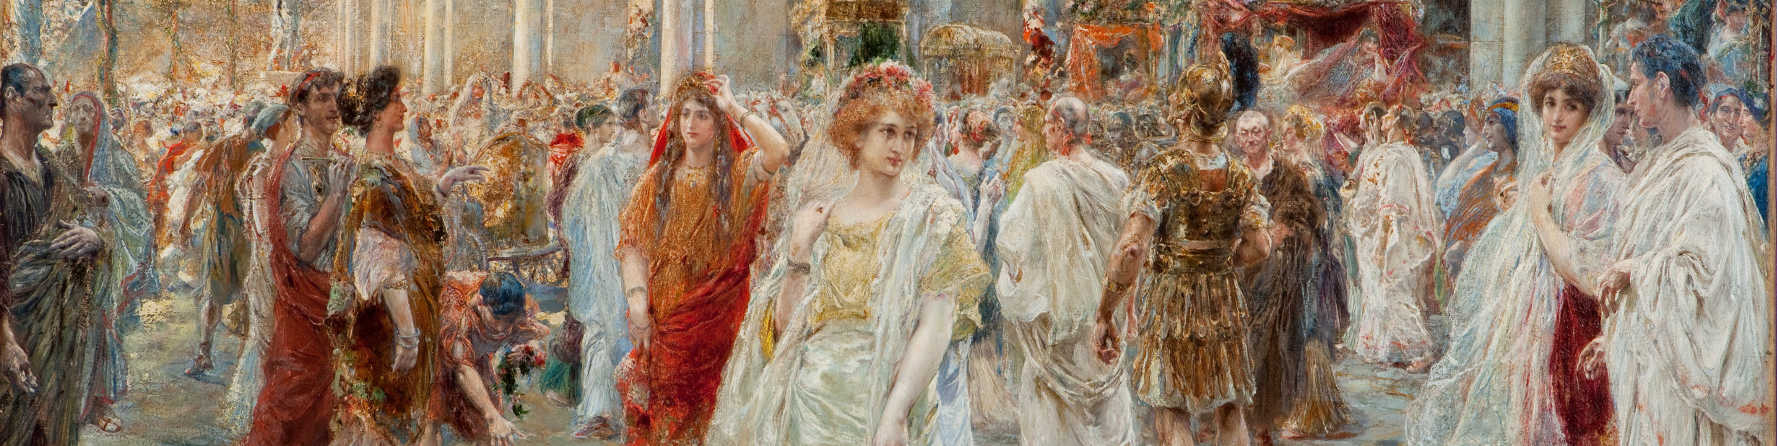 What Festivals Were Celebrated in Ancient Rome?